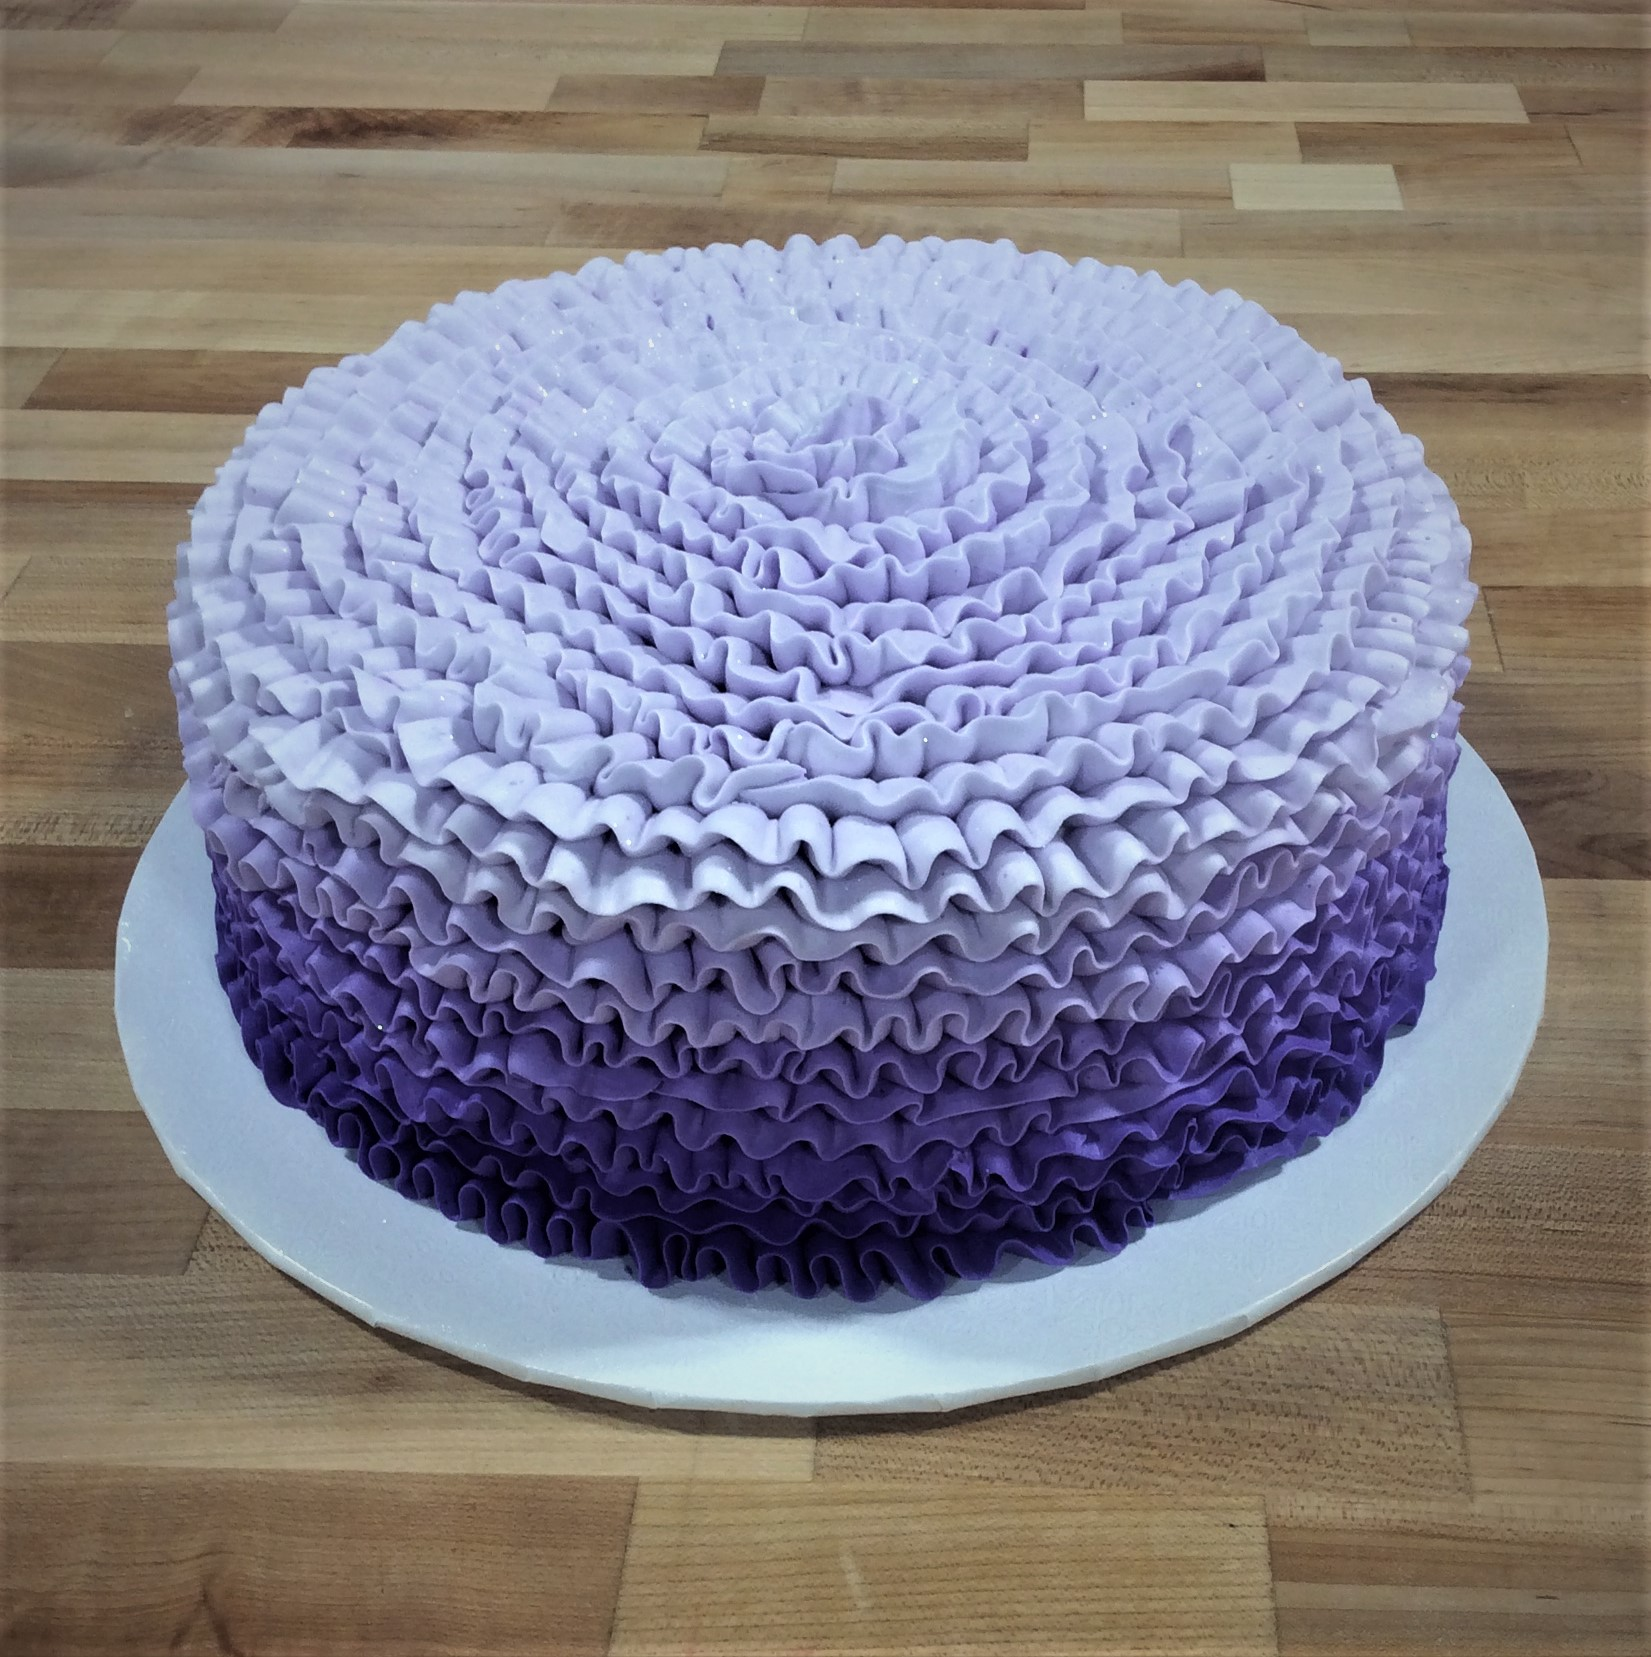 Round Cake with Ruffles in Shades of Purple